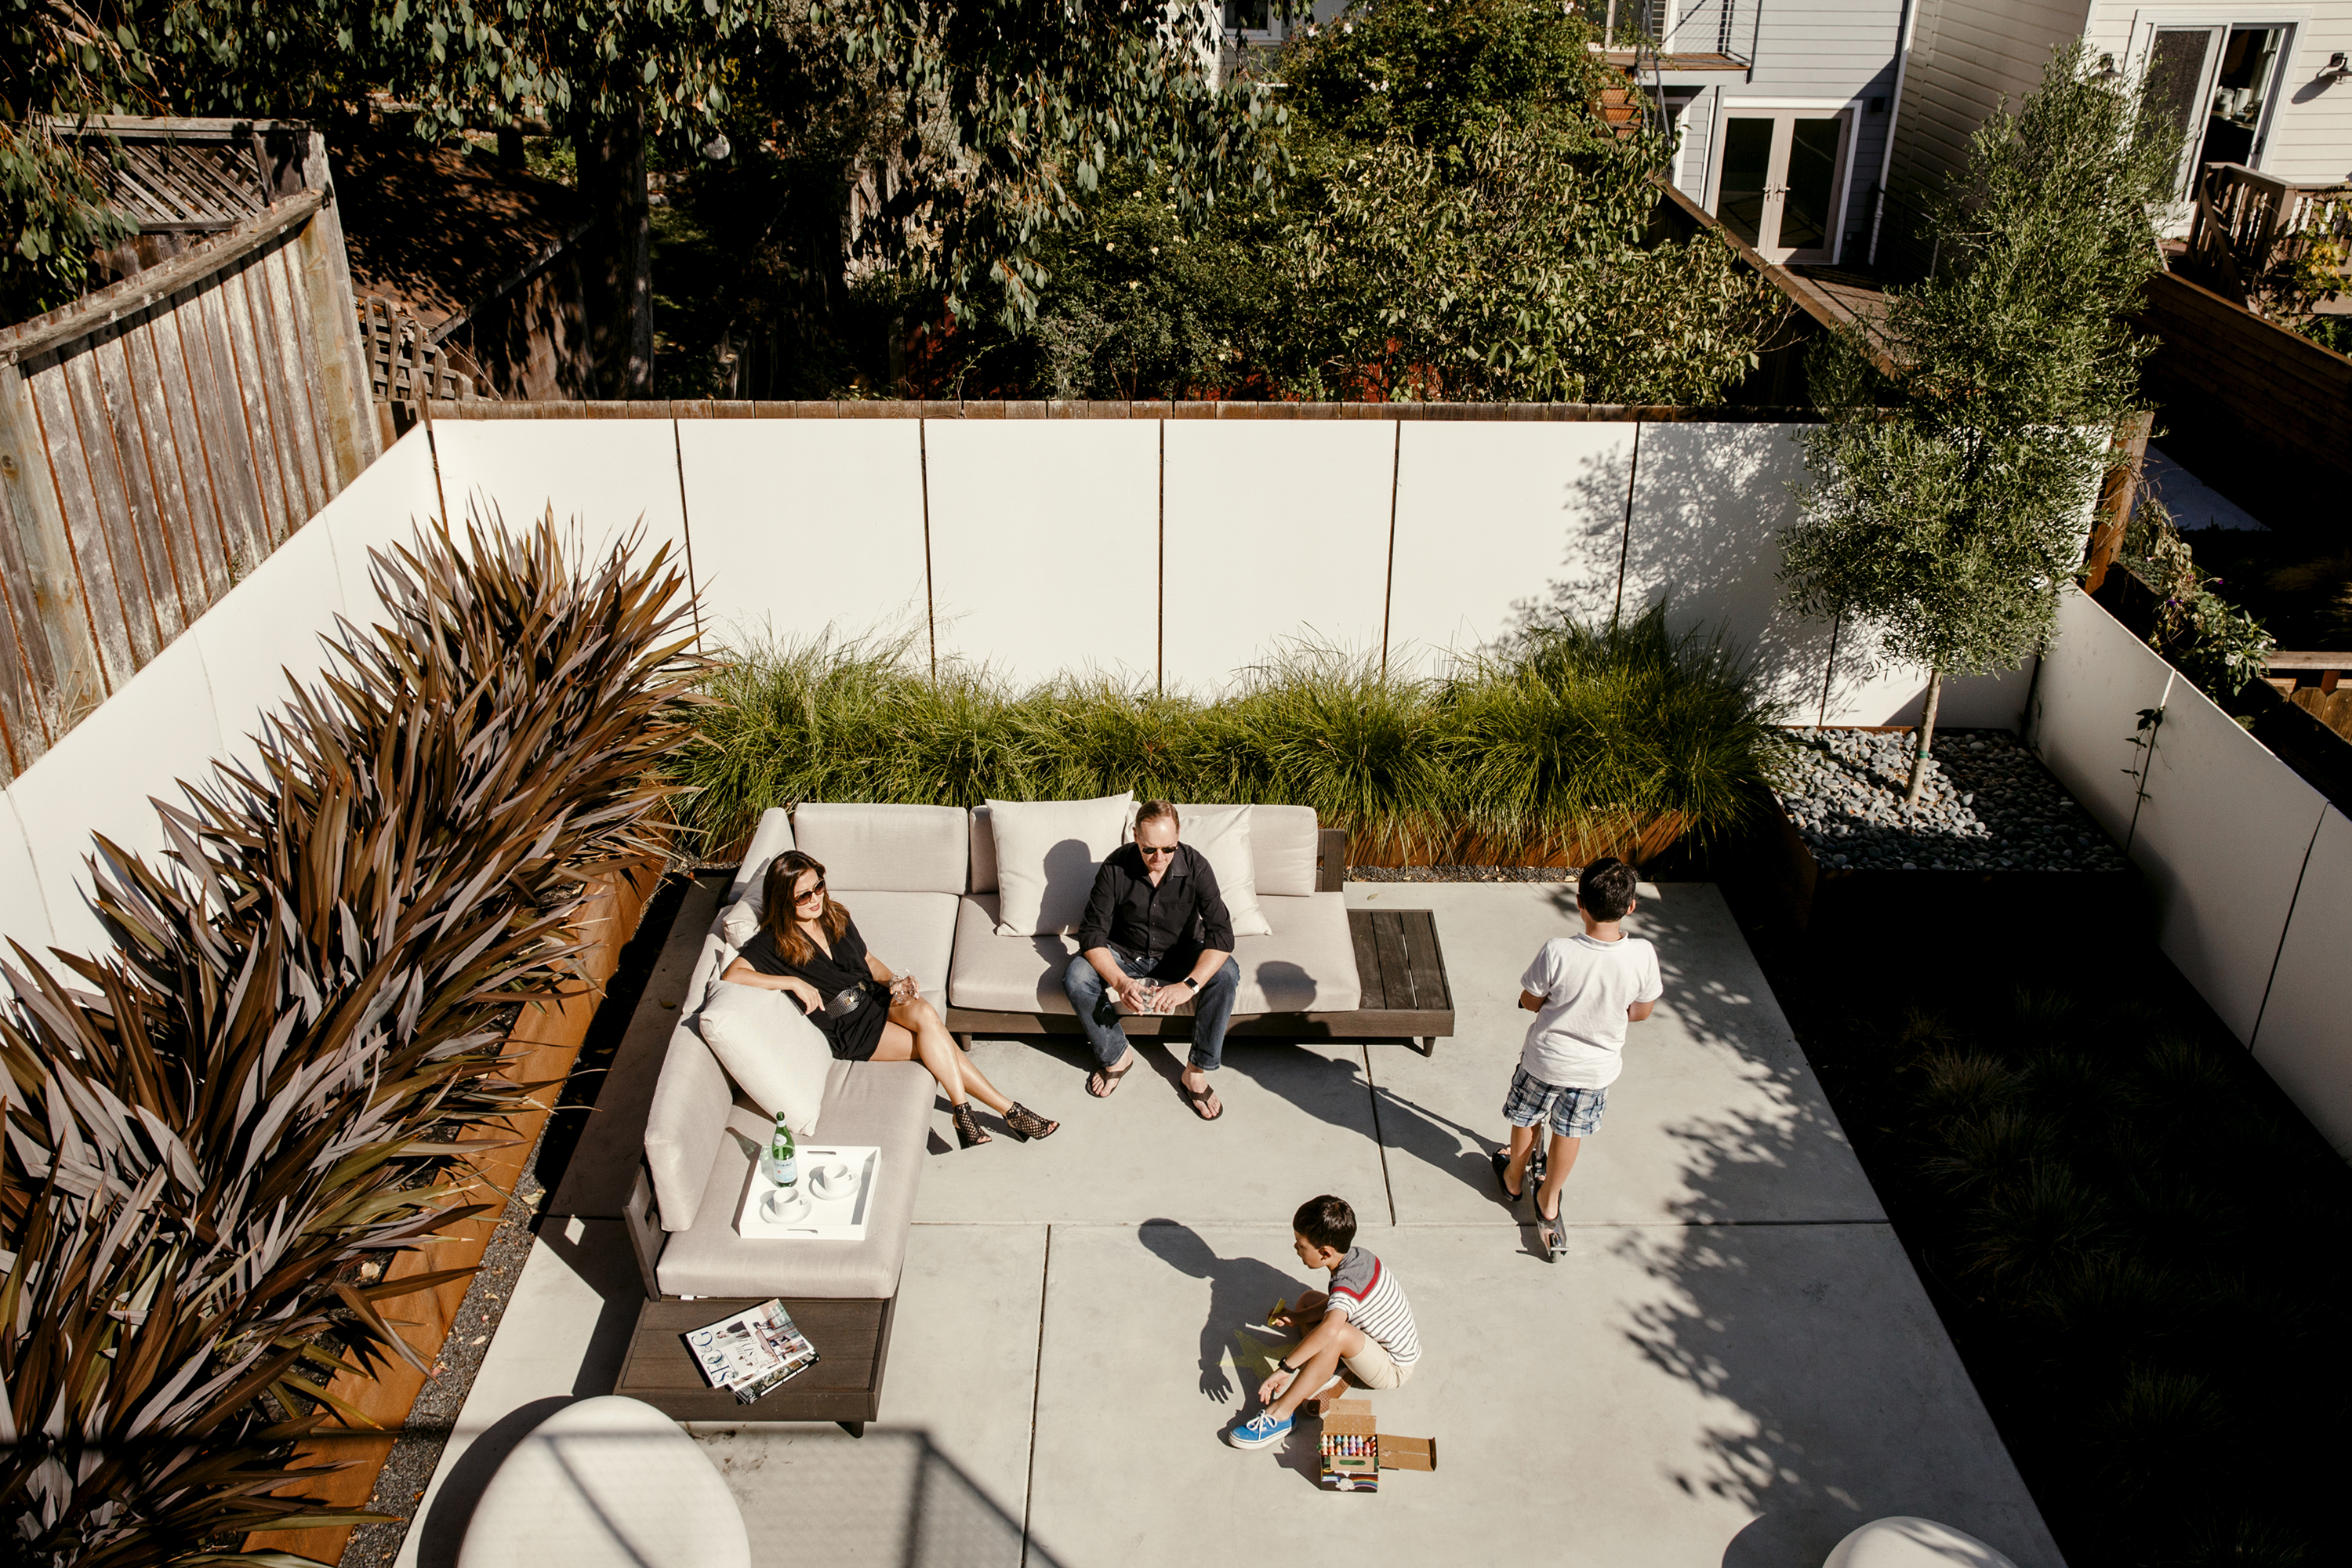 How to design an outdoor room